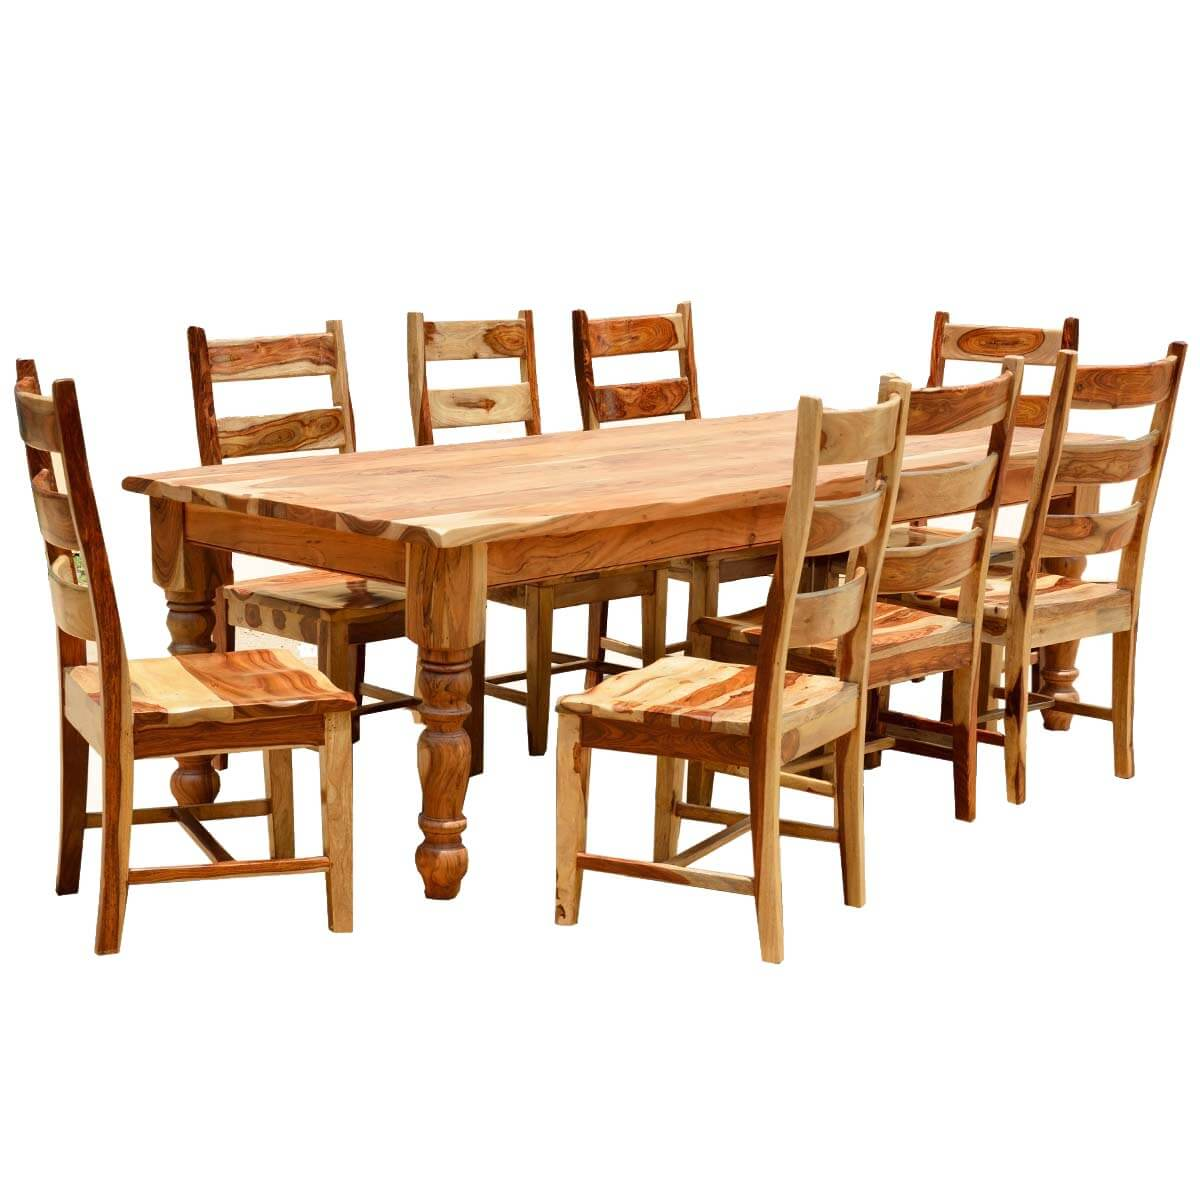 Rustic solid wood farmhouse dining room table chair set for Dining room furniture set